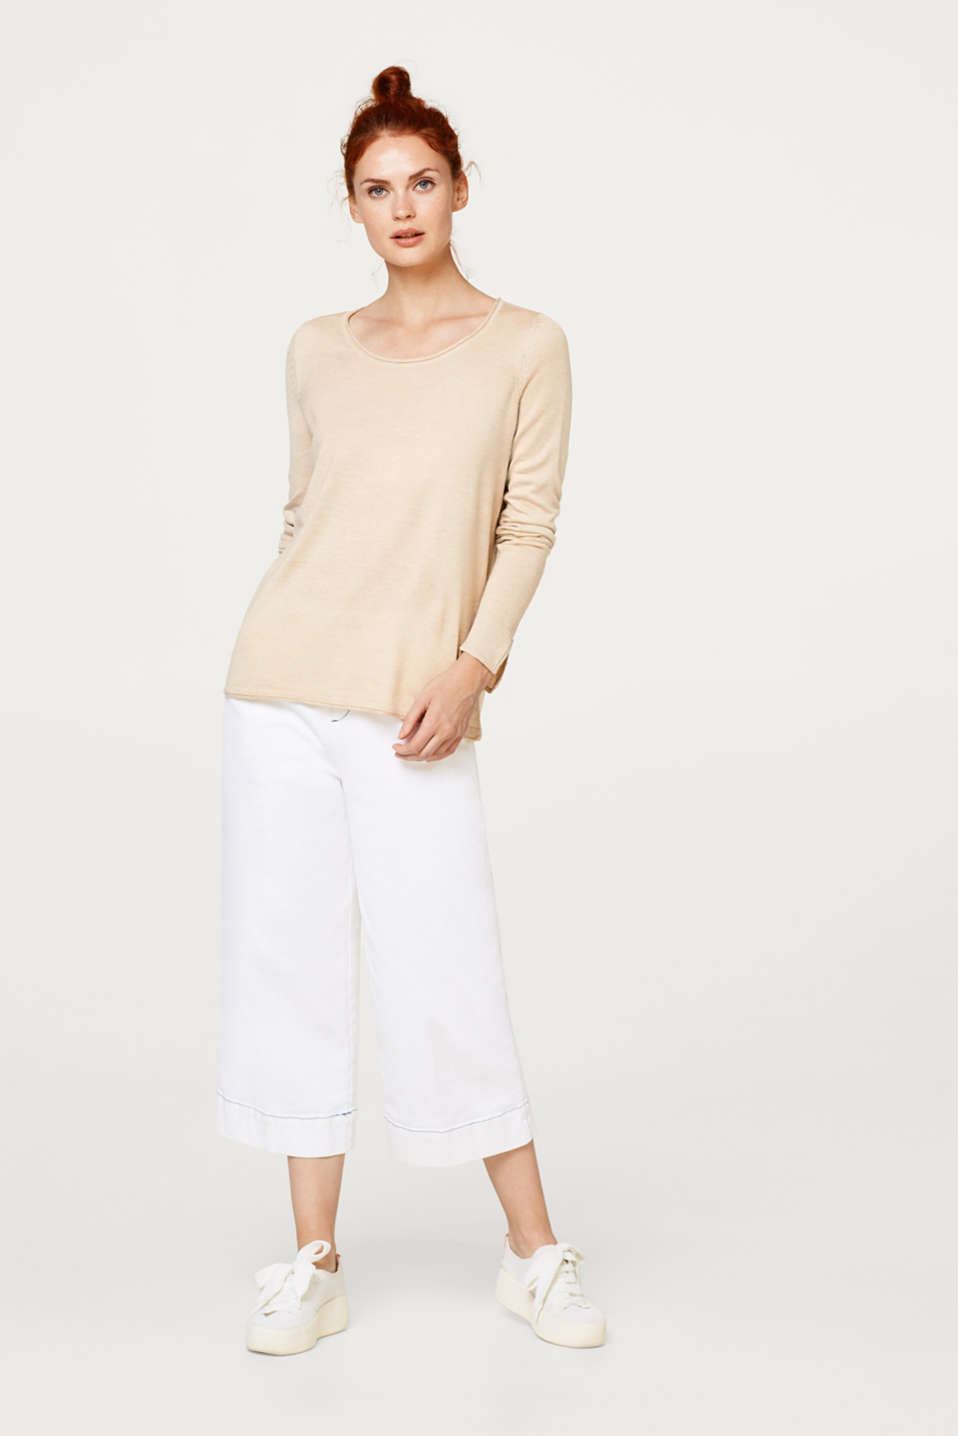 Light jumper with sleeve slits